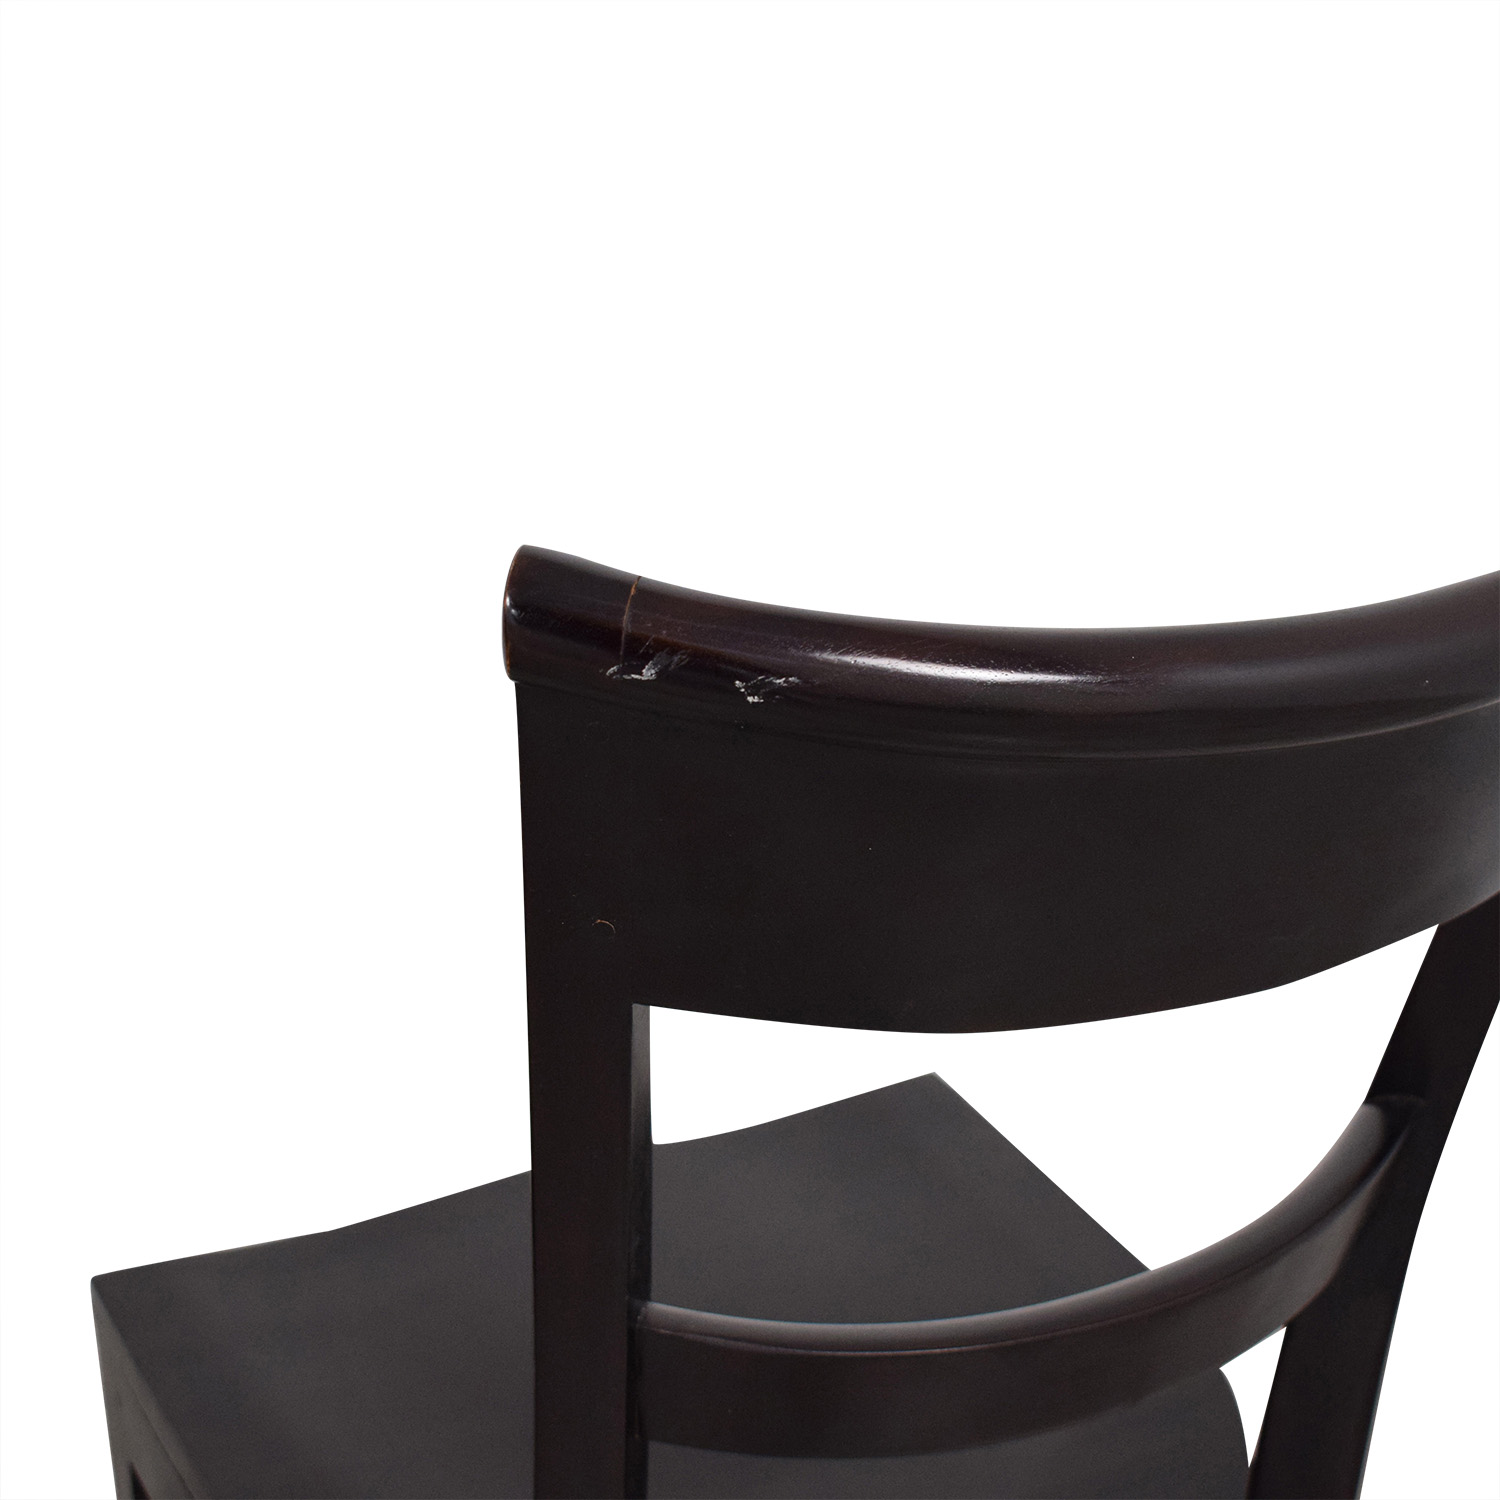 Crate & Barrel Crate & Barrel Dining Side Chairs pa